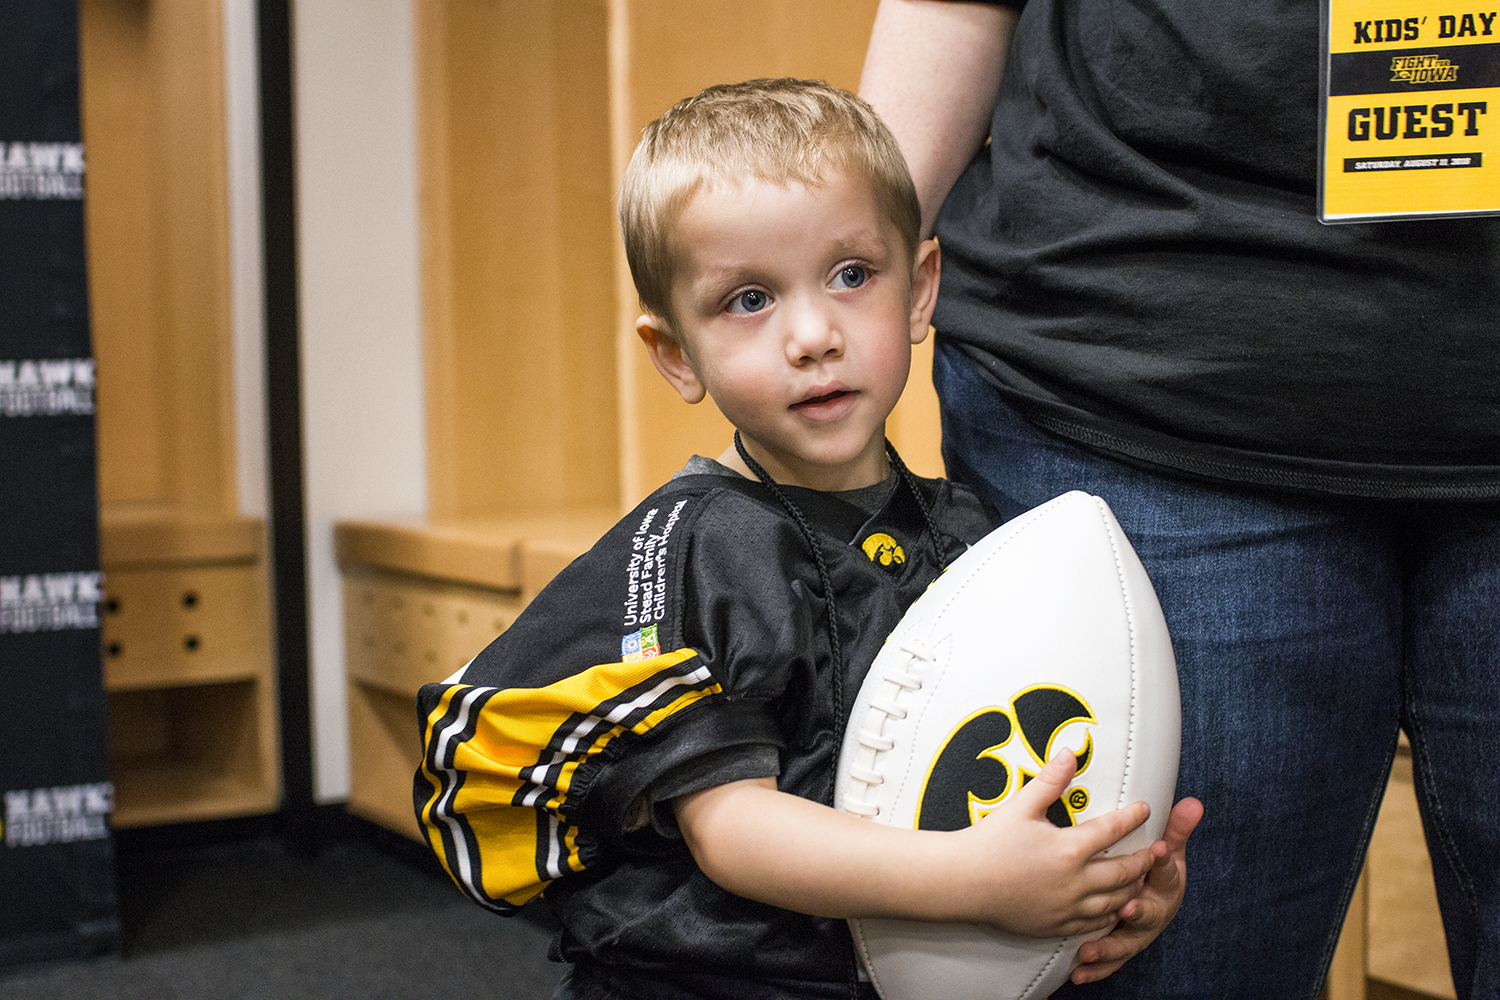 Kid Captain Mason Zabel holds a football during Iowa Football Kid's Day at Kinnick Stadium on Saturday, August 11, 2018. The 2018 Kid Captains met the Iowa football team and participated in a behind-the-scenes tour of Kinnick Stadium. Each child's story will be featured throughout the 2018 Iowa football season.